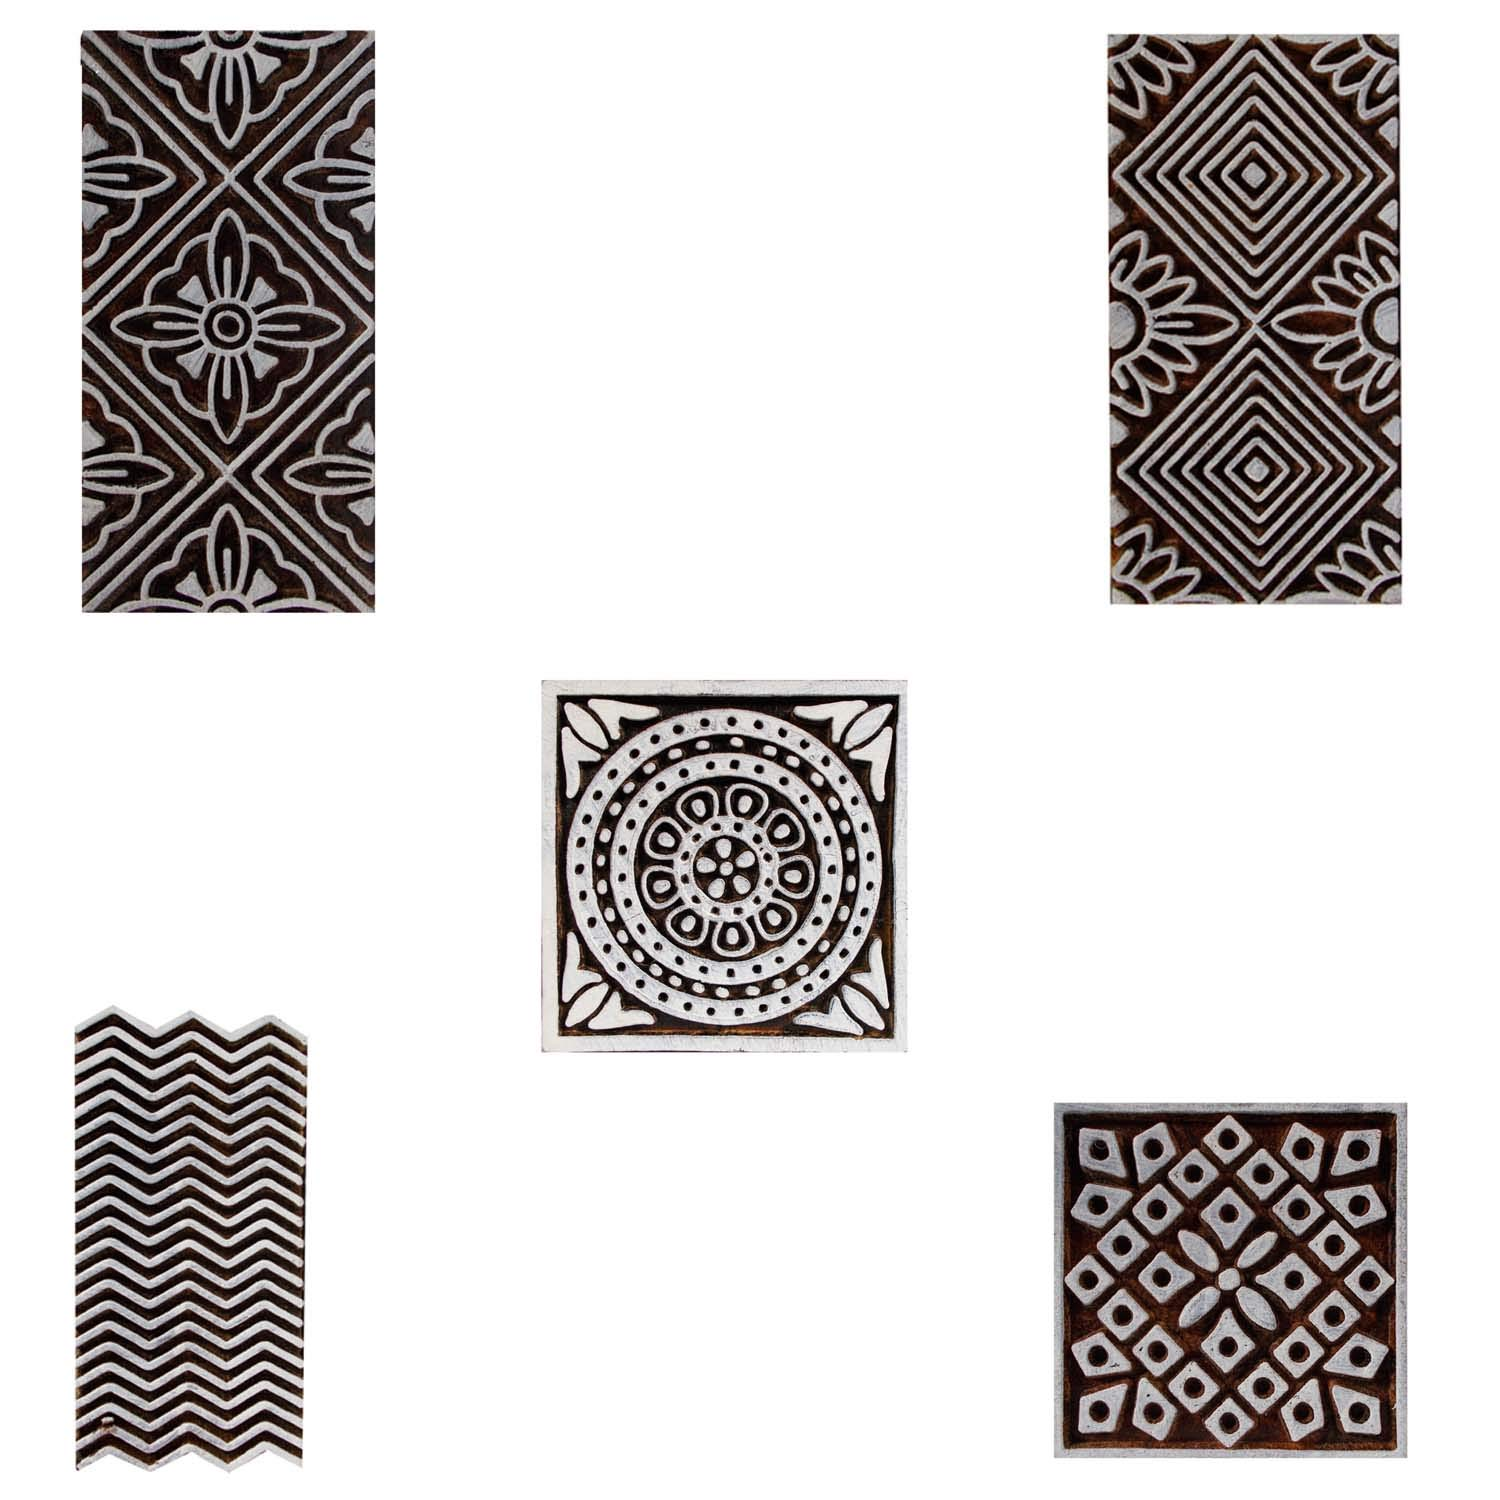 Indian Printing Block Wooden Floral Border and Square Craft Clay Pottery Scrapbook Motif Pack of 5 Textile Stamps Blocks